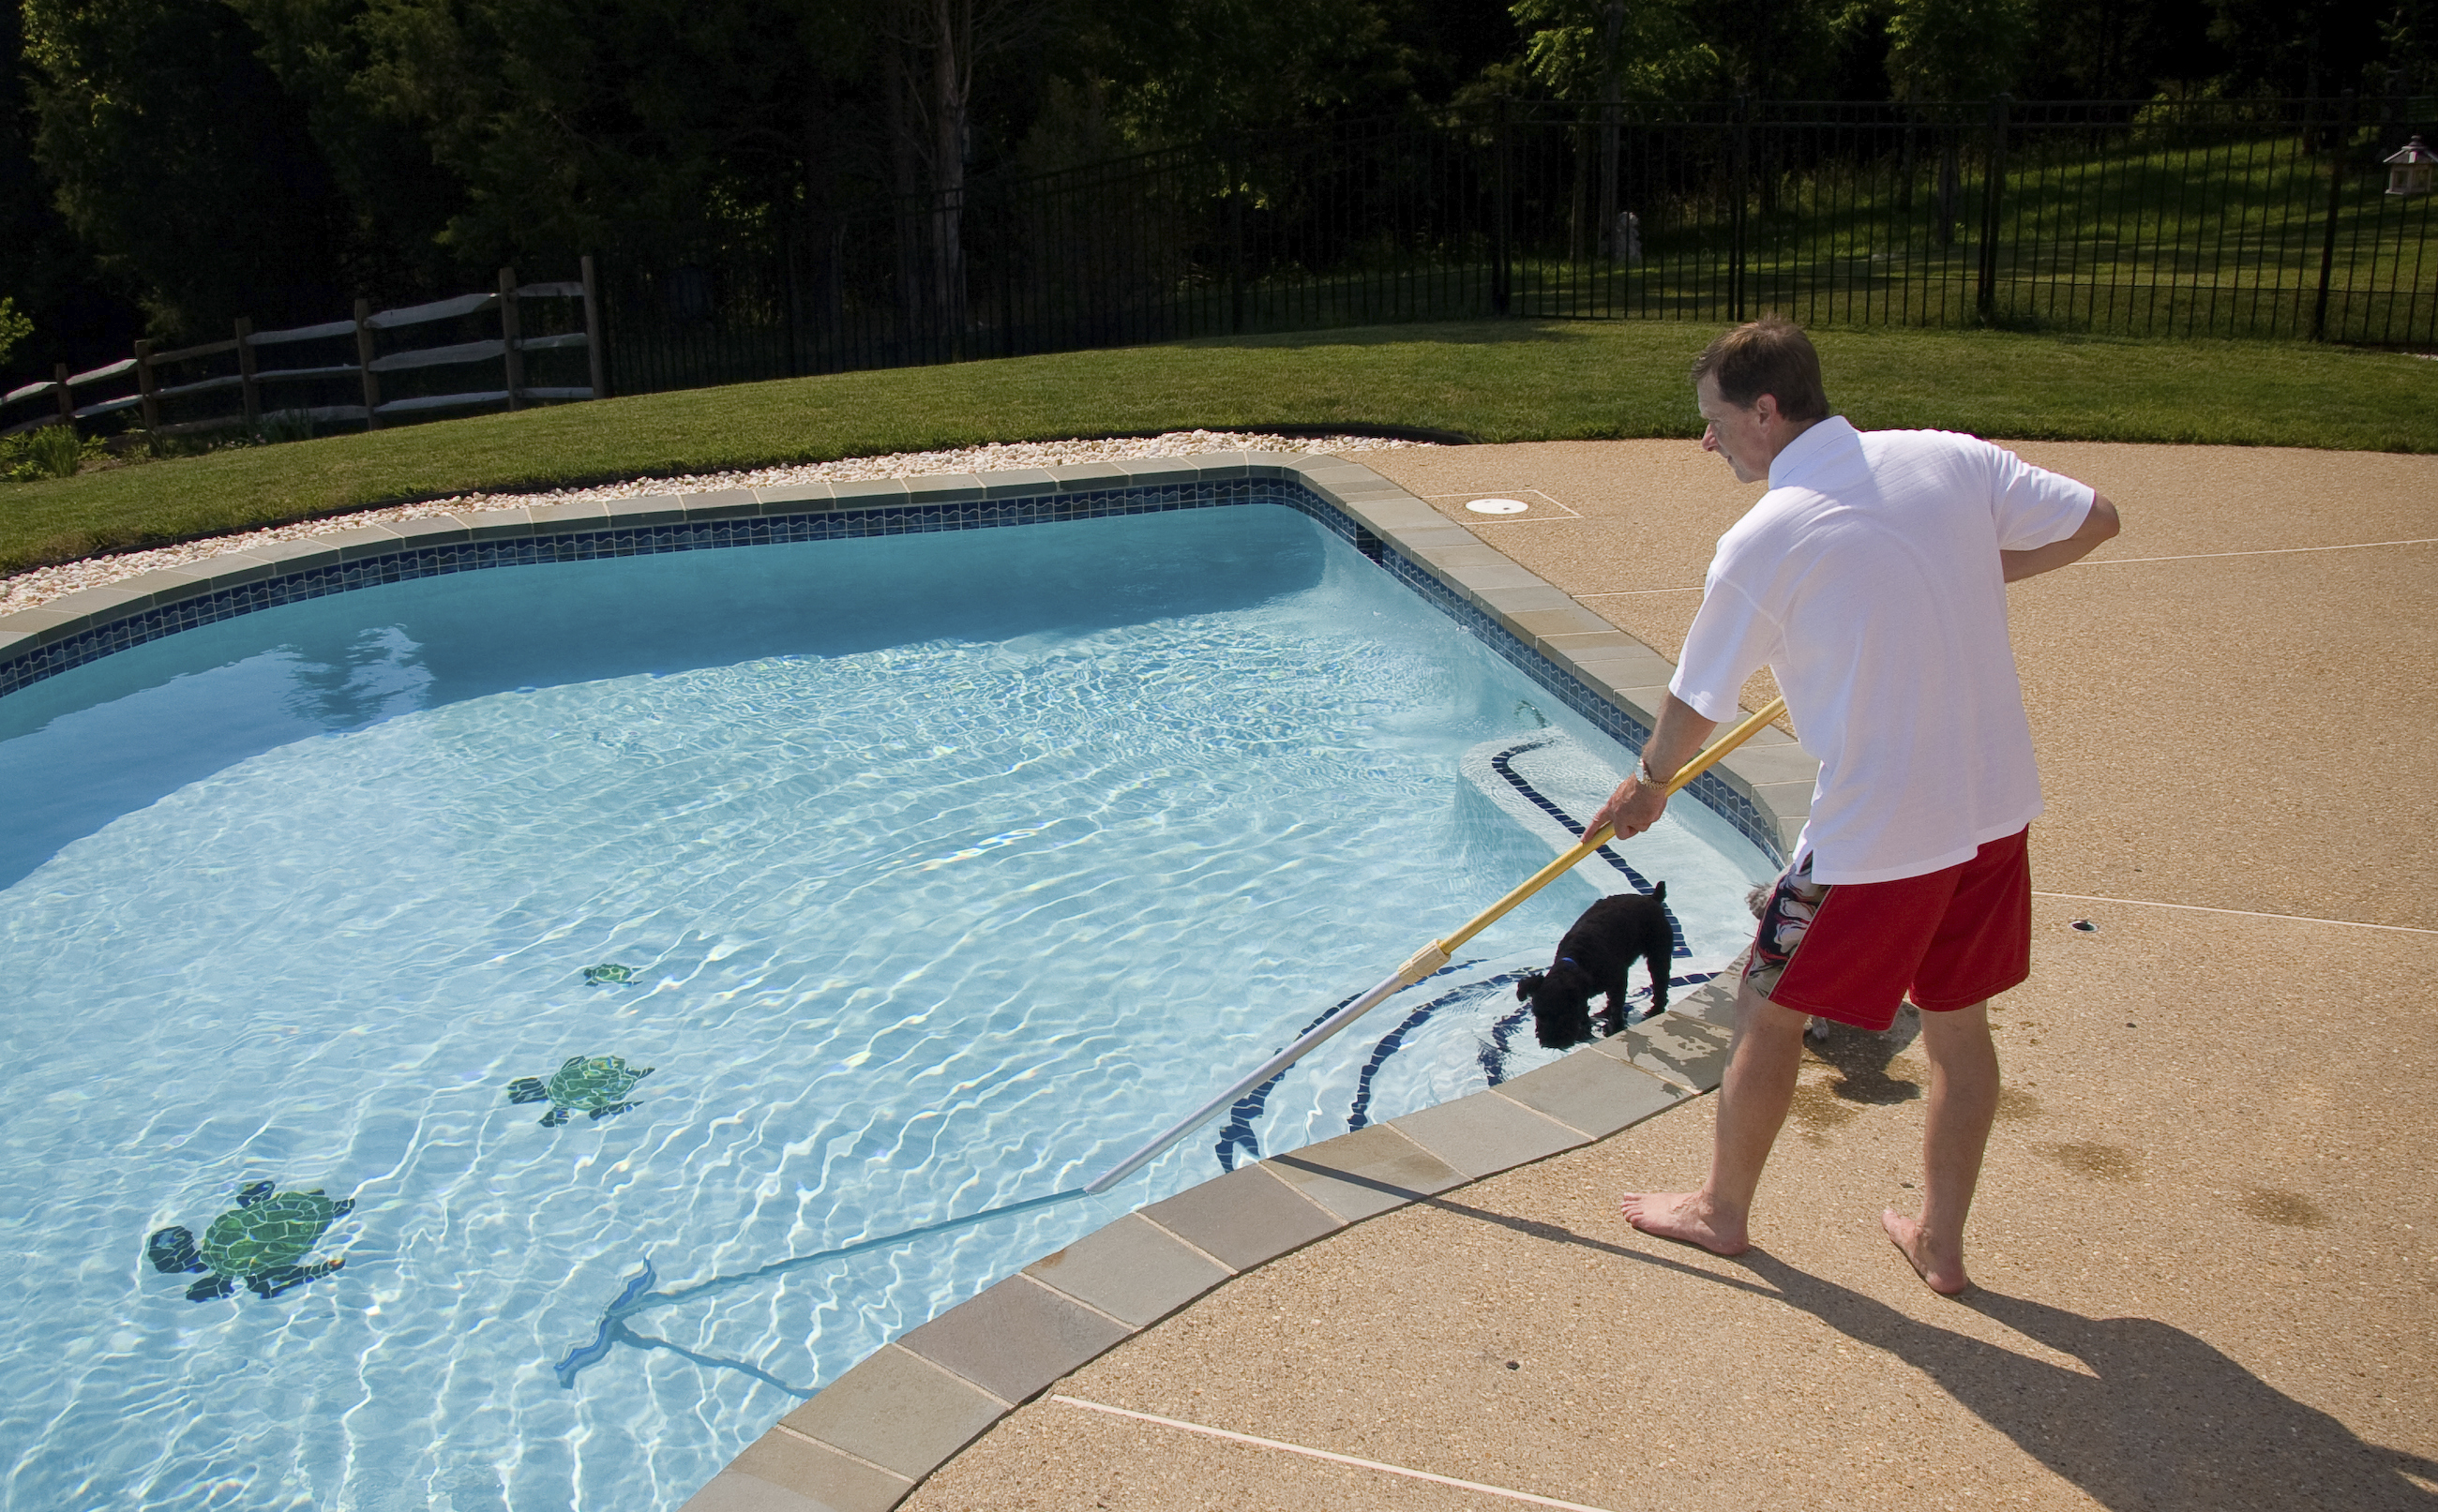 Proper Pool Maintenance Is Imperative As Summer Draws To A